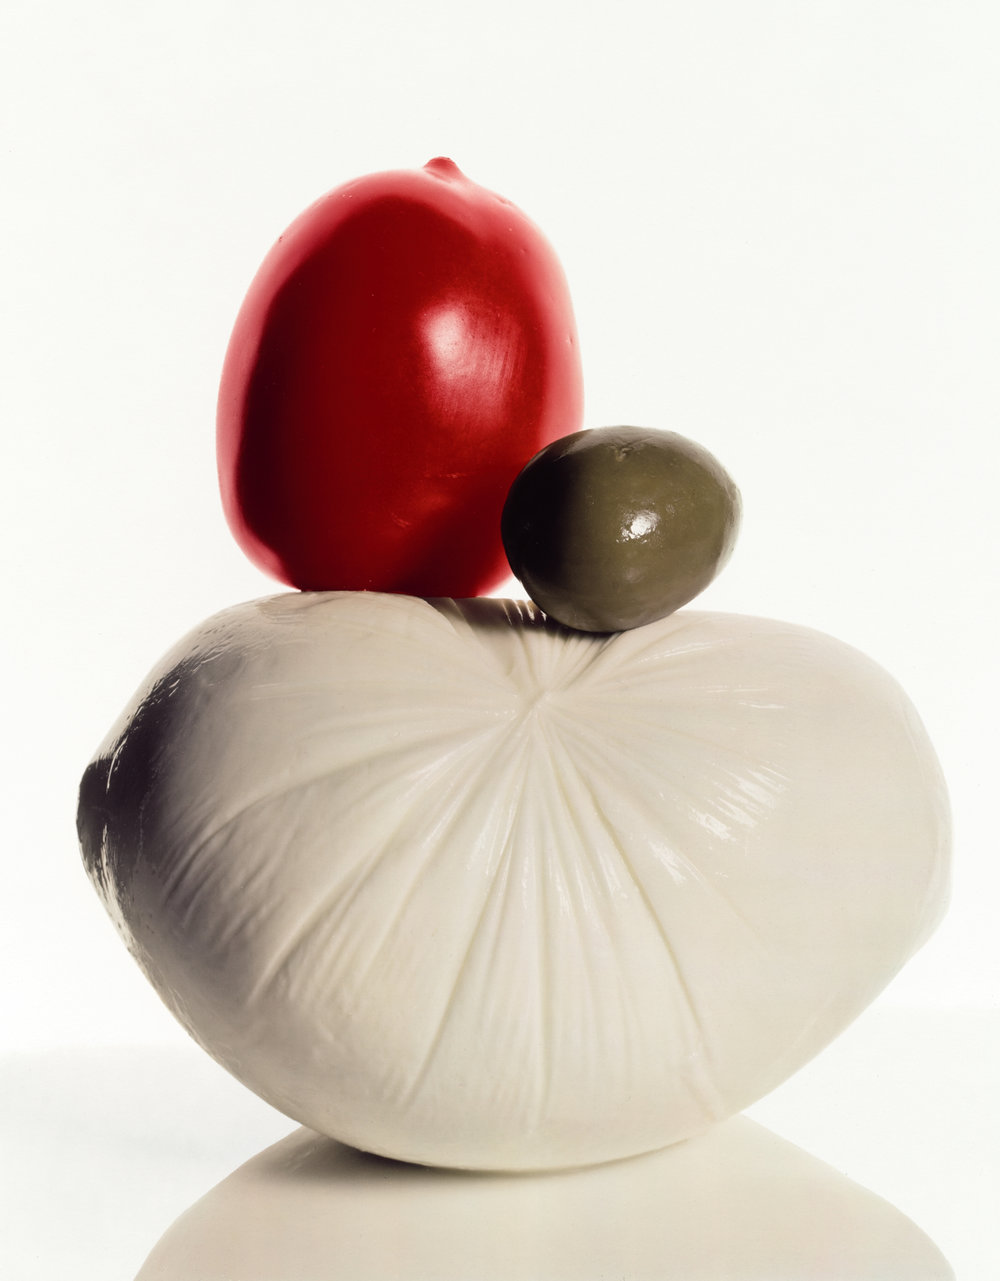 Italian Still Life (B) , New York, 1981 Dye transfer print © The Irving Penn Foundation